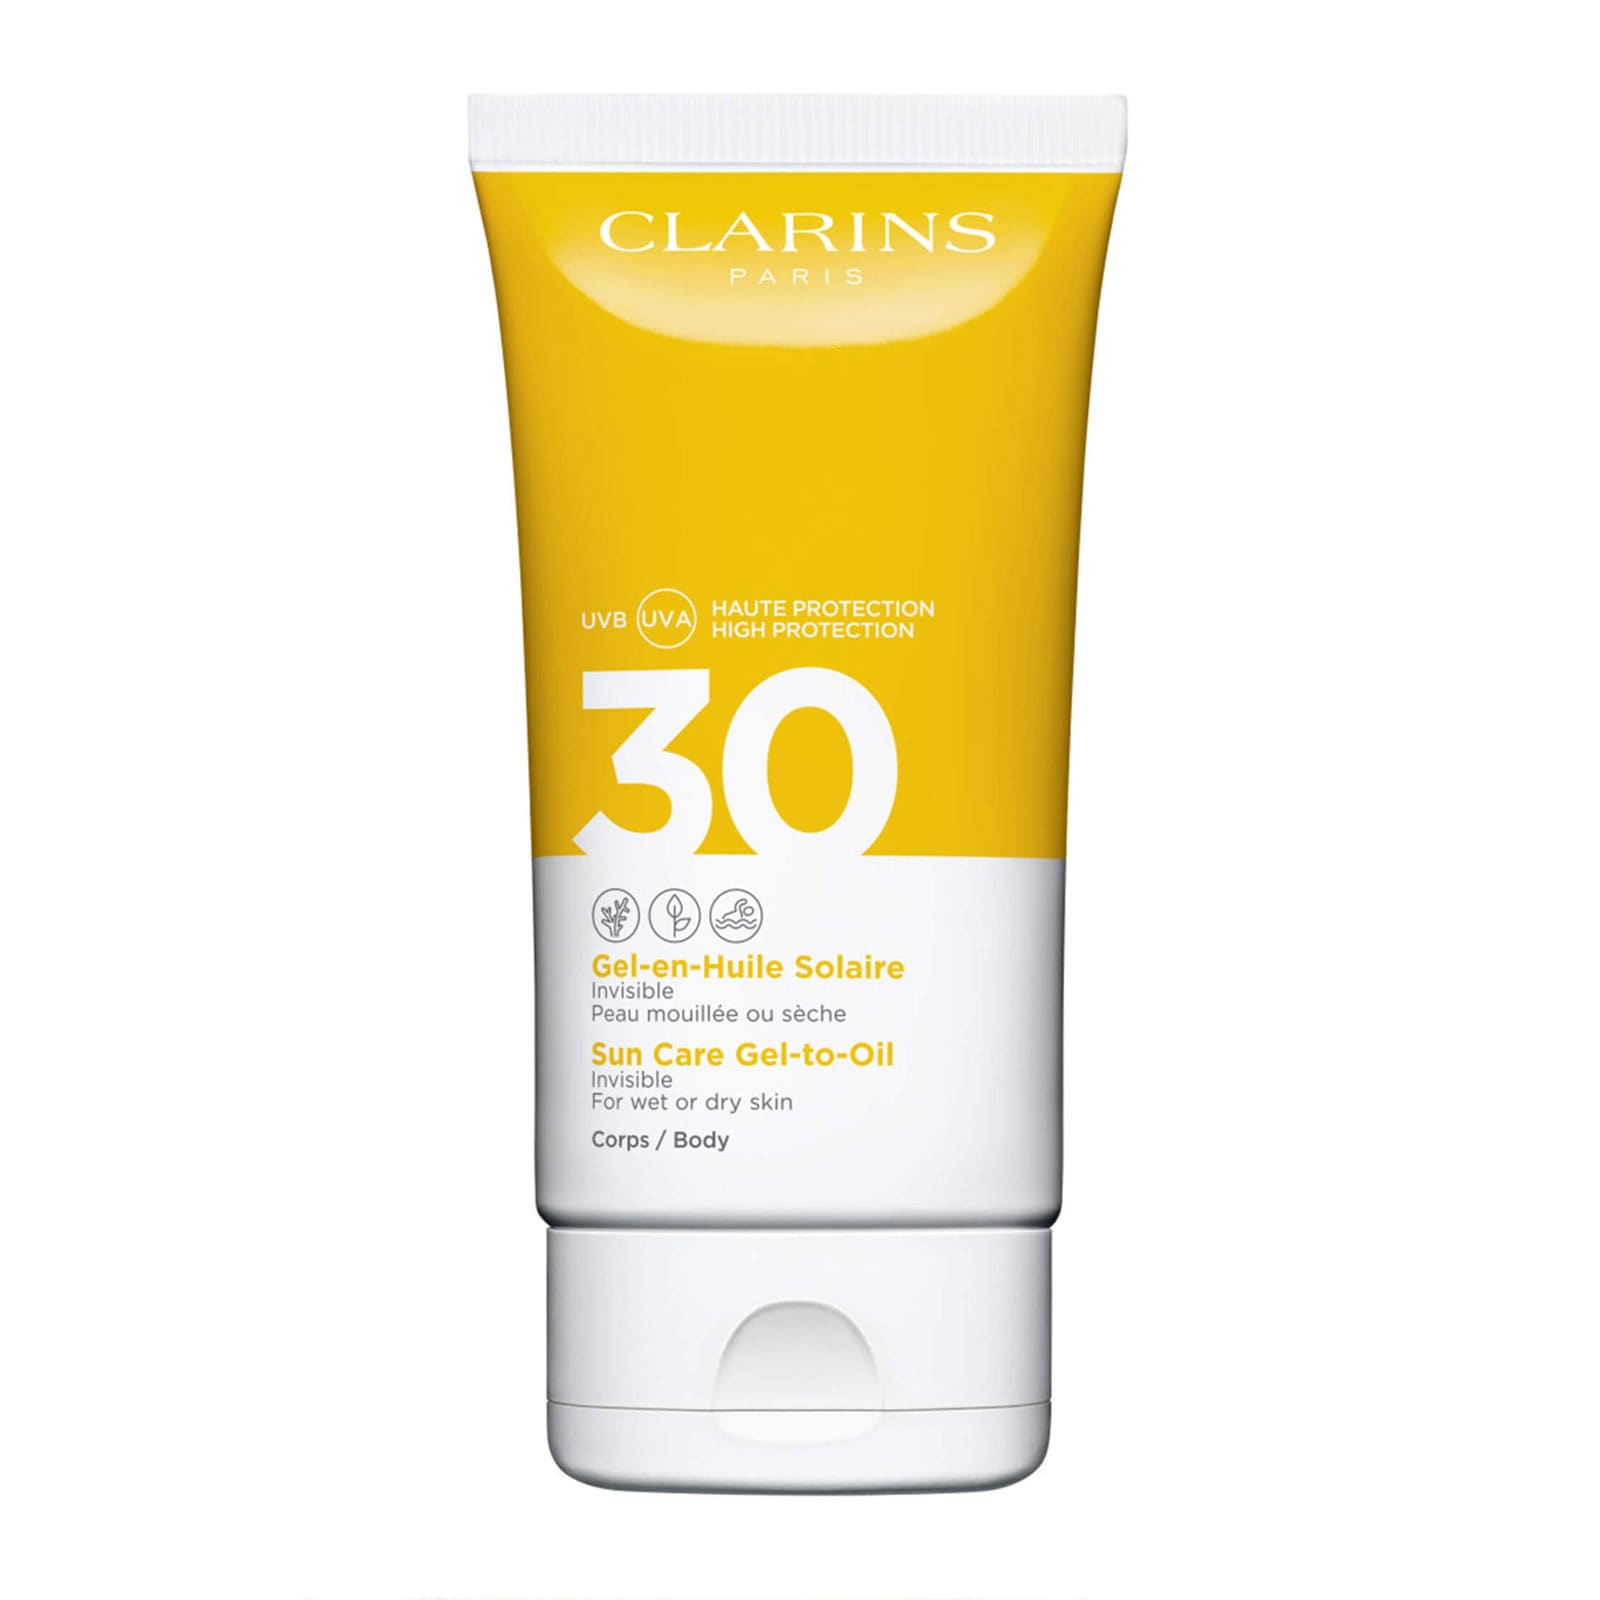 CLARINS - Sun Care Gel-To-Oil for Body SPF30 £22